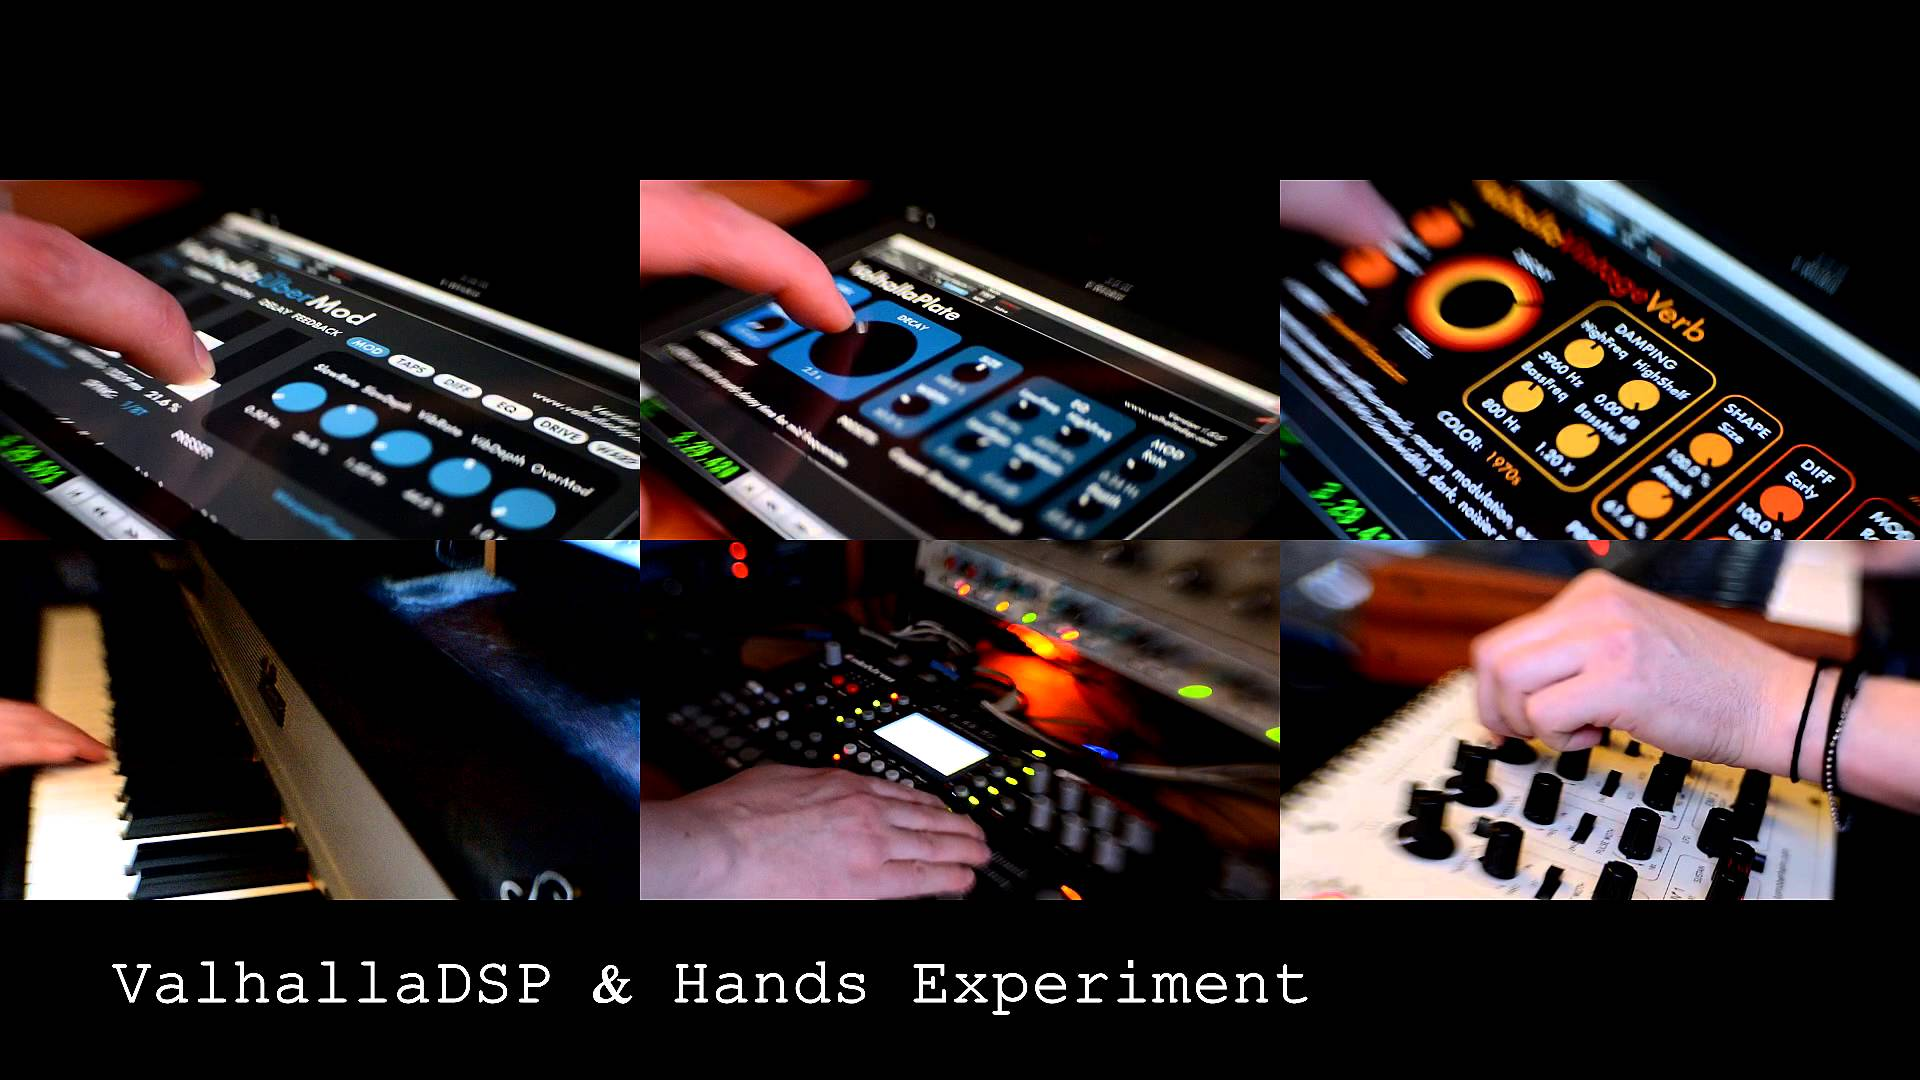 Valhalla DSP & Hands Experiment